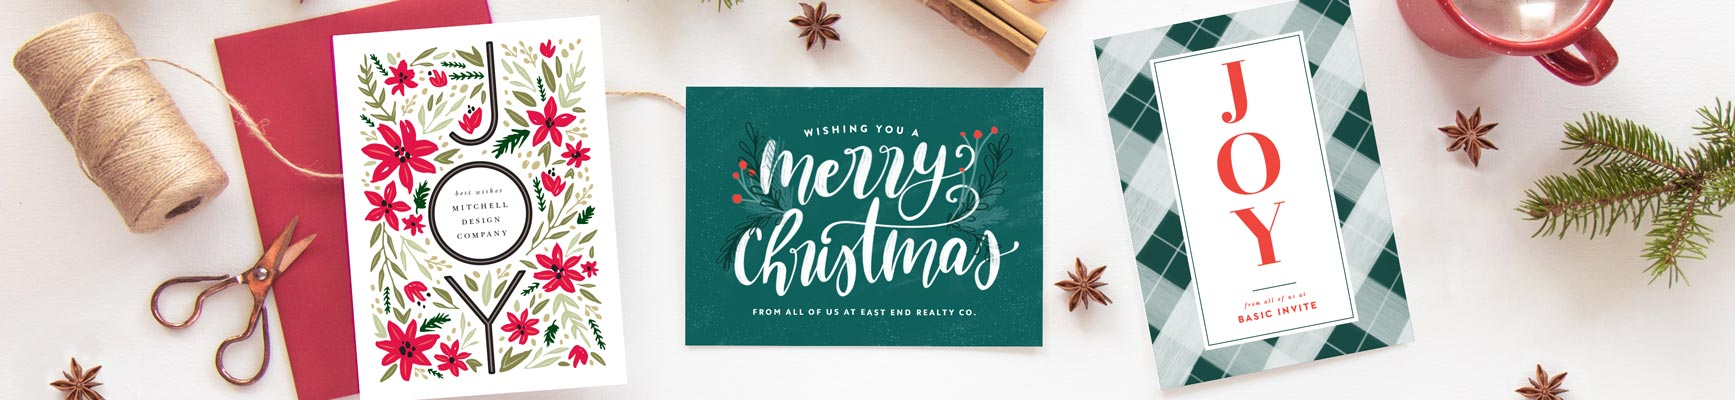 Business Corporate Holiday Cards Easy To Design Basic Invite